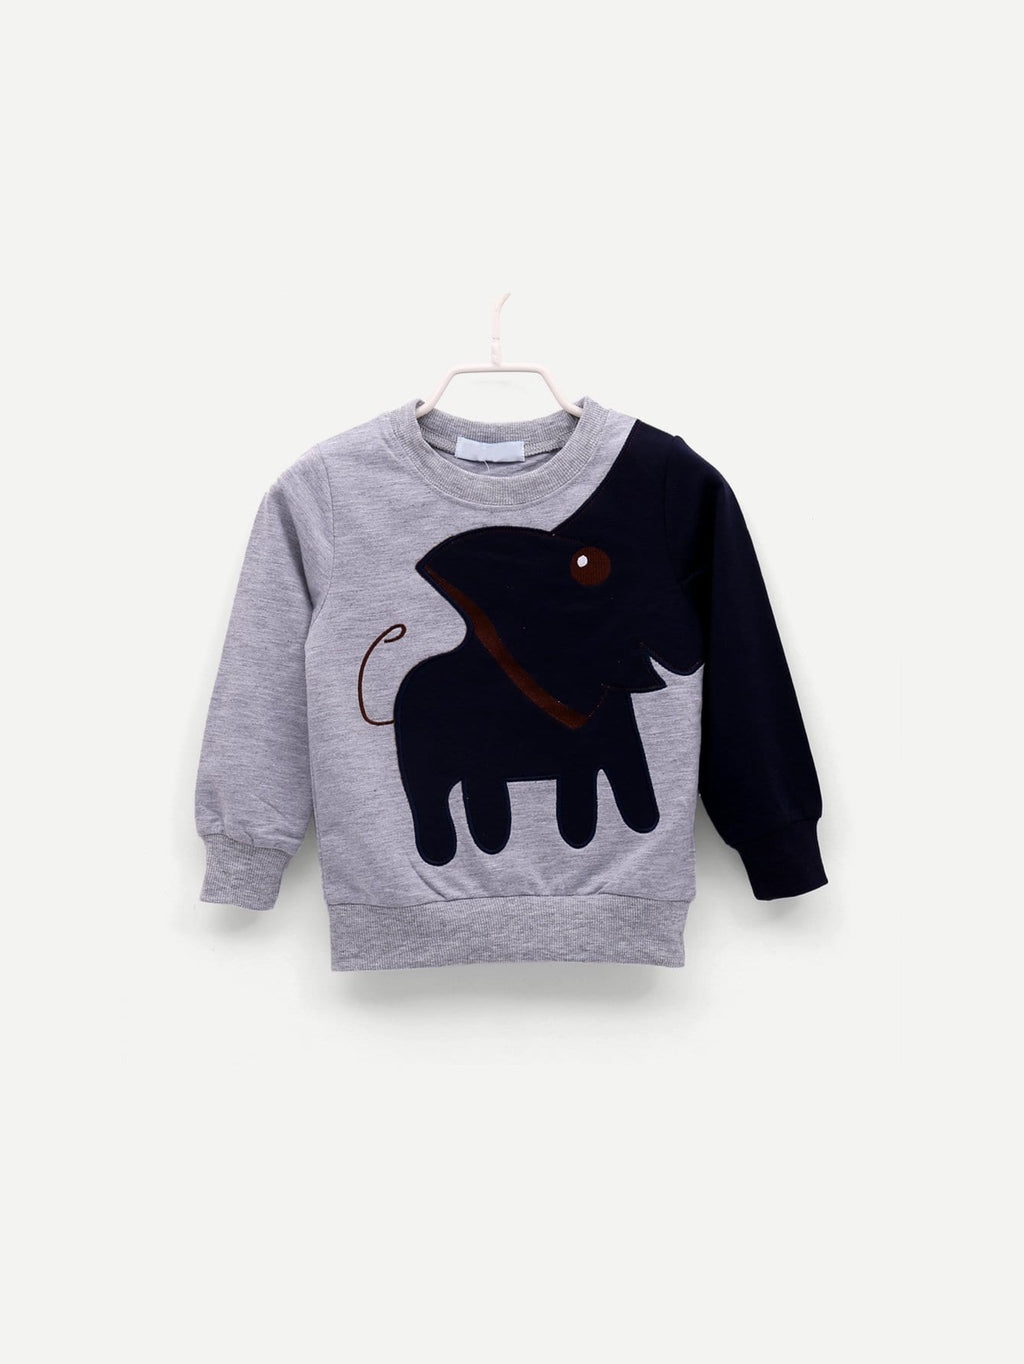 Toddler Boy Sweatshirt - Elephant Pattern Letter Print